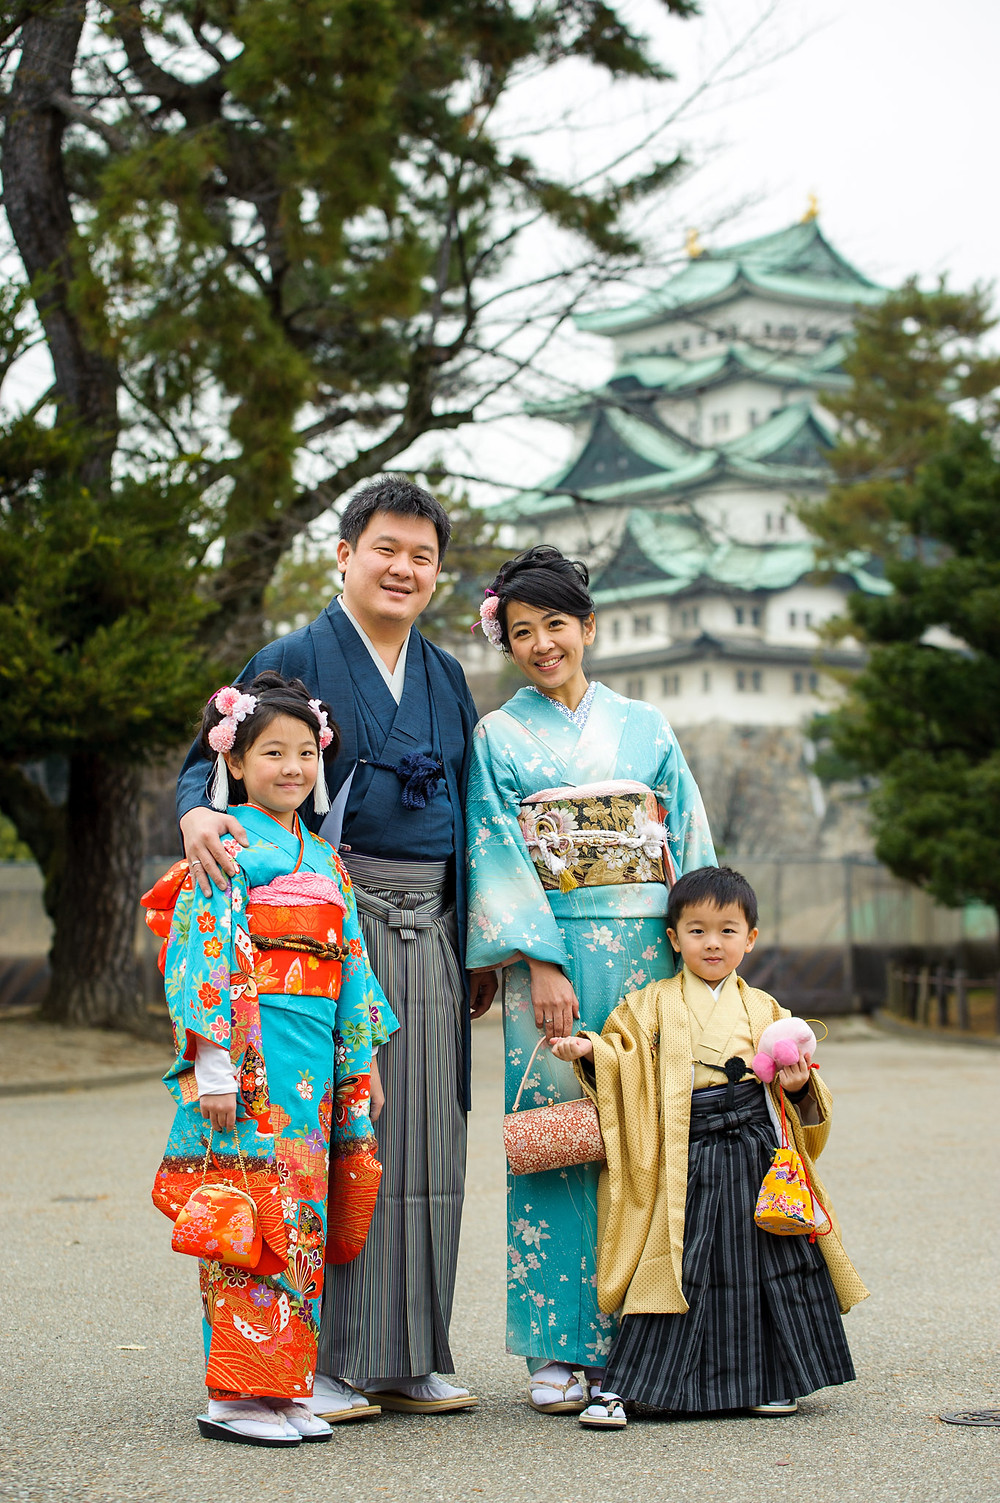 The Permana Family poses in front of the Nagoya castle in their kimonos